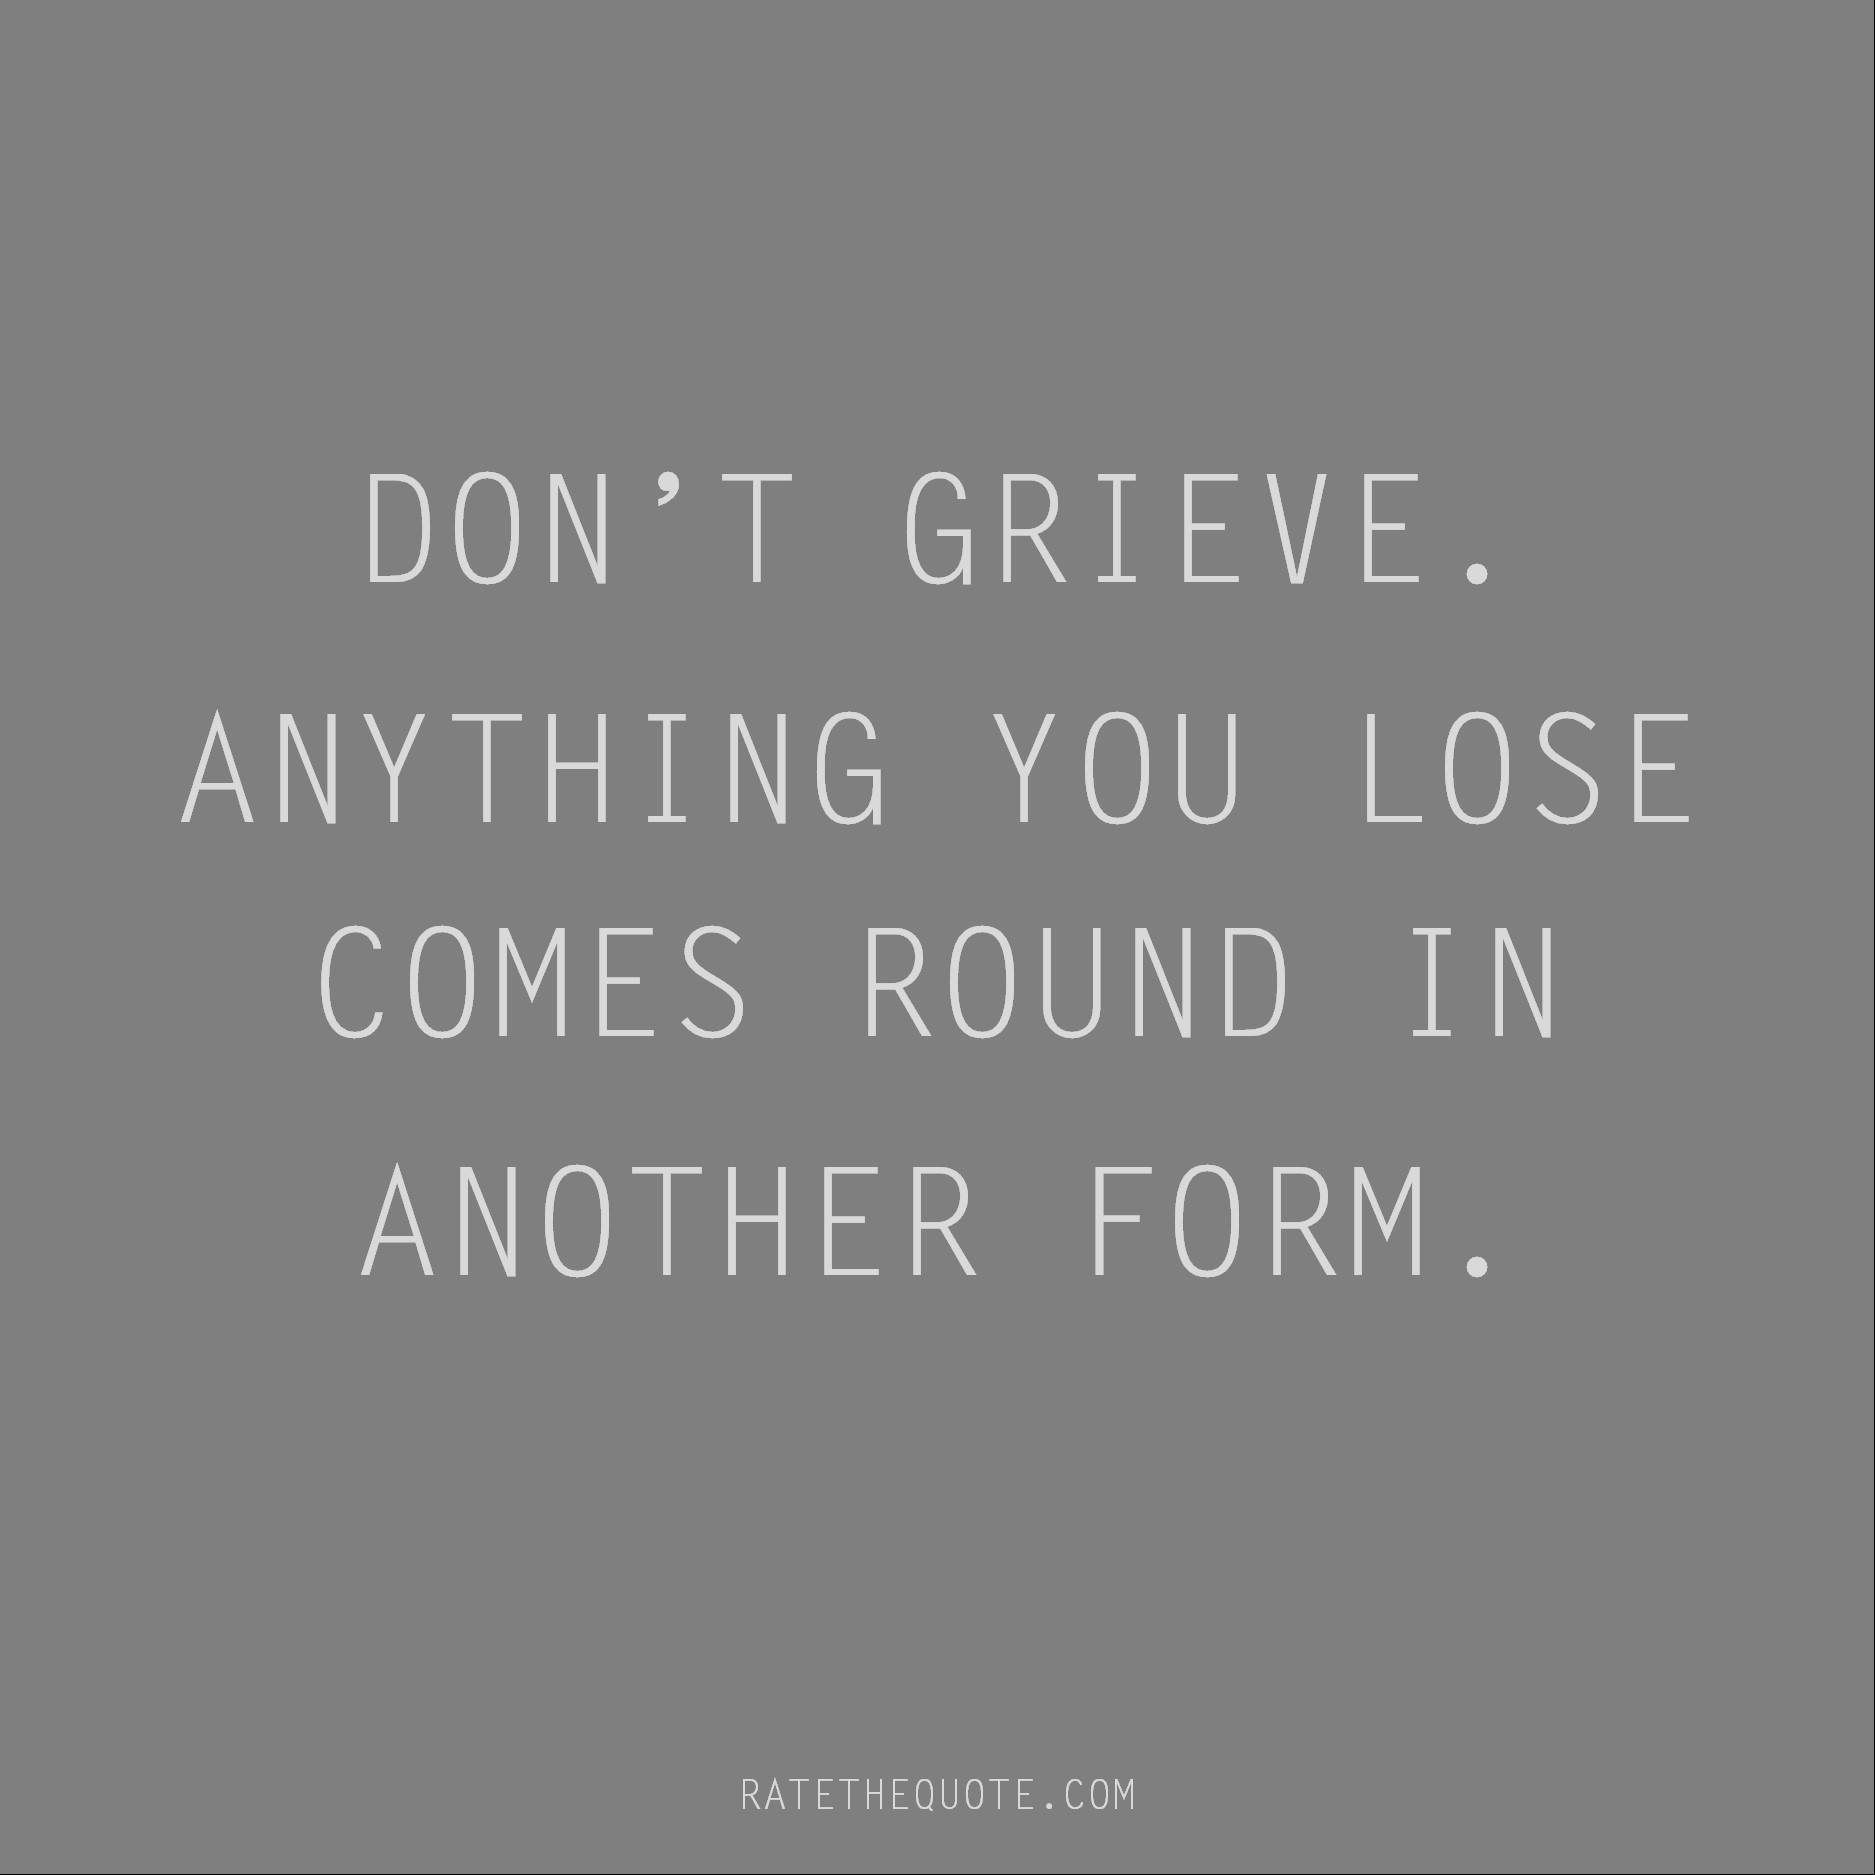 Rumi Quote Don't grieve. Anything you lose comes round in another form.